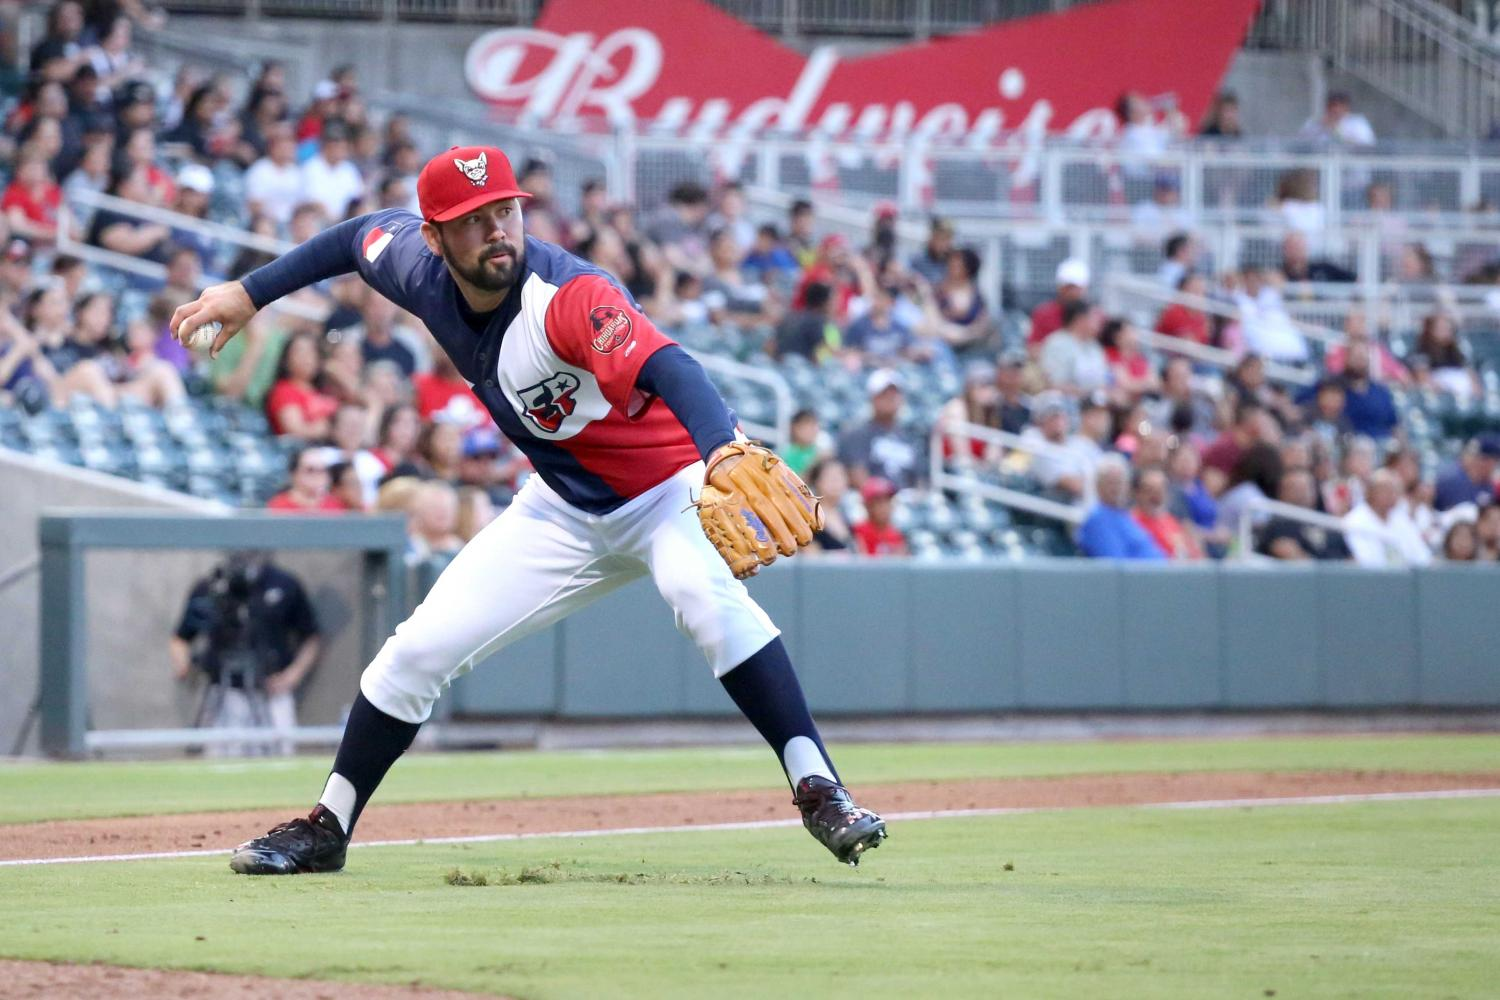 Chihuahuas prevail in high scoring win over the Grizzlies